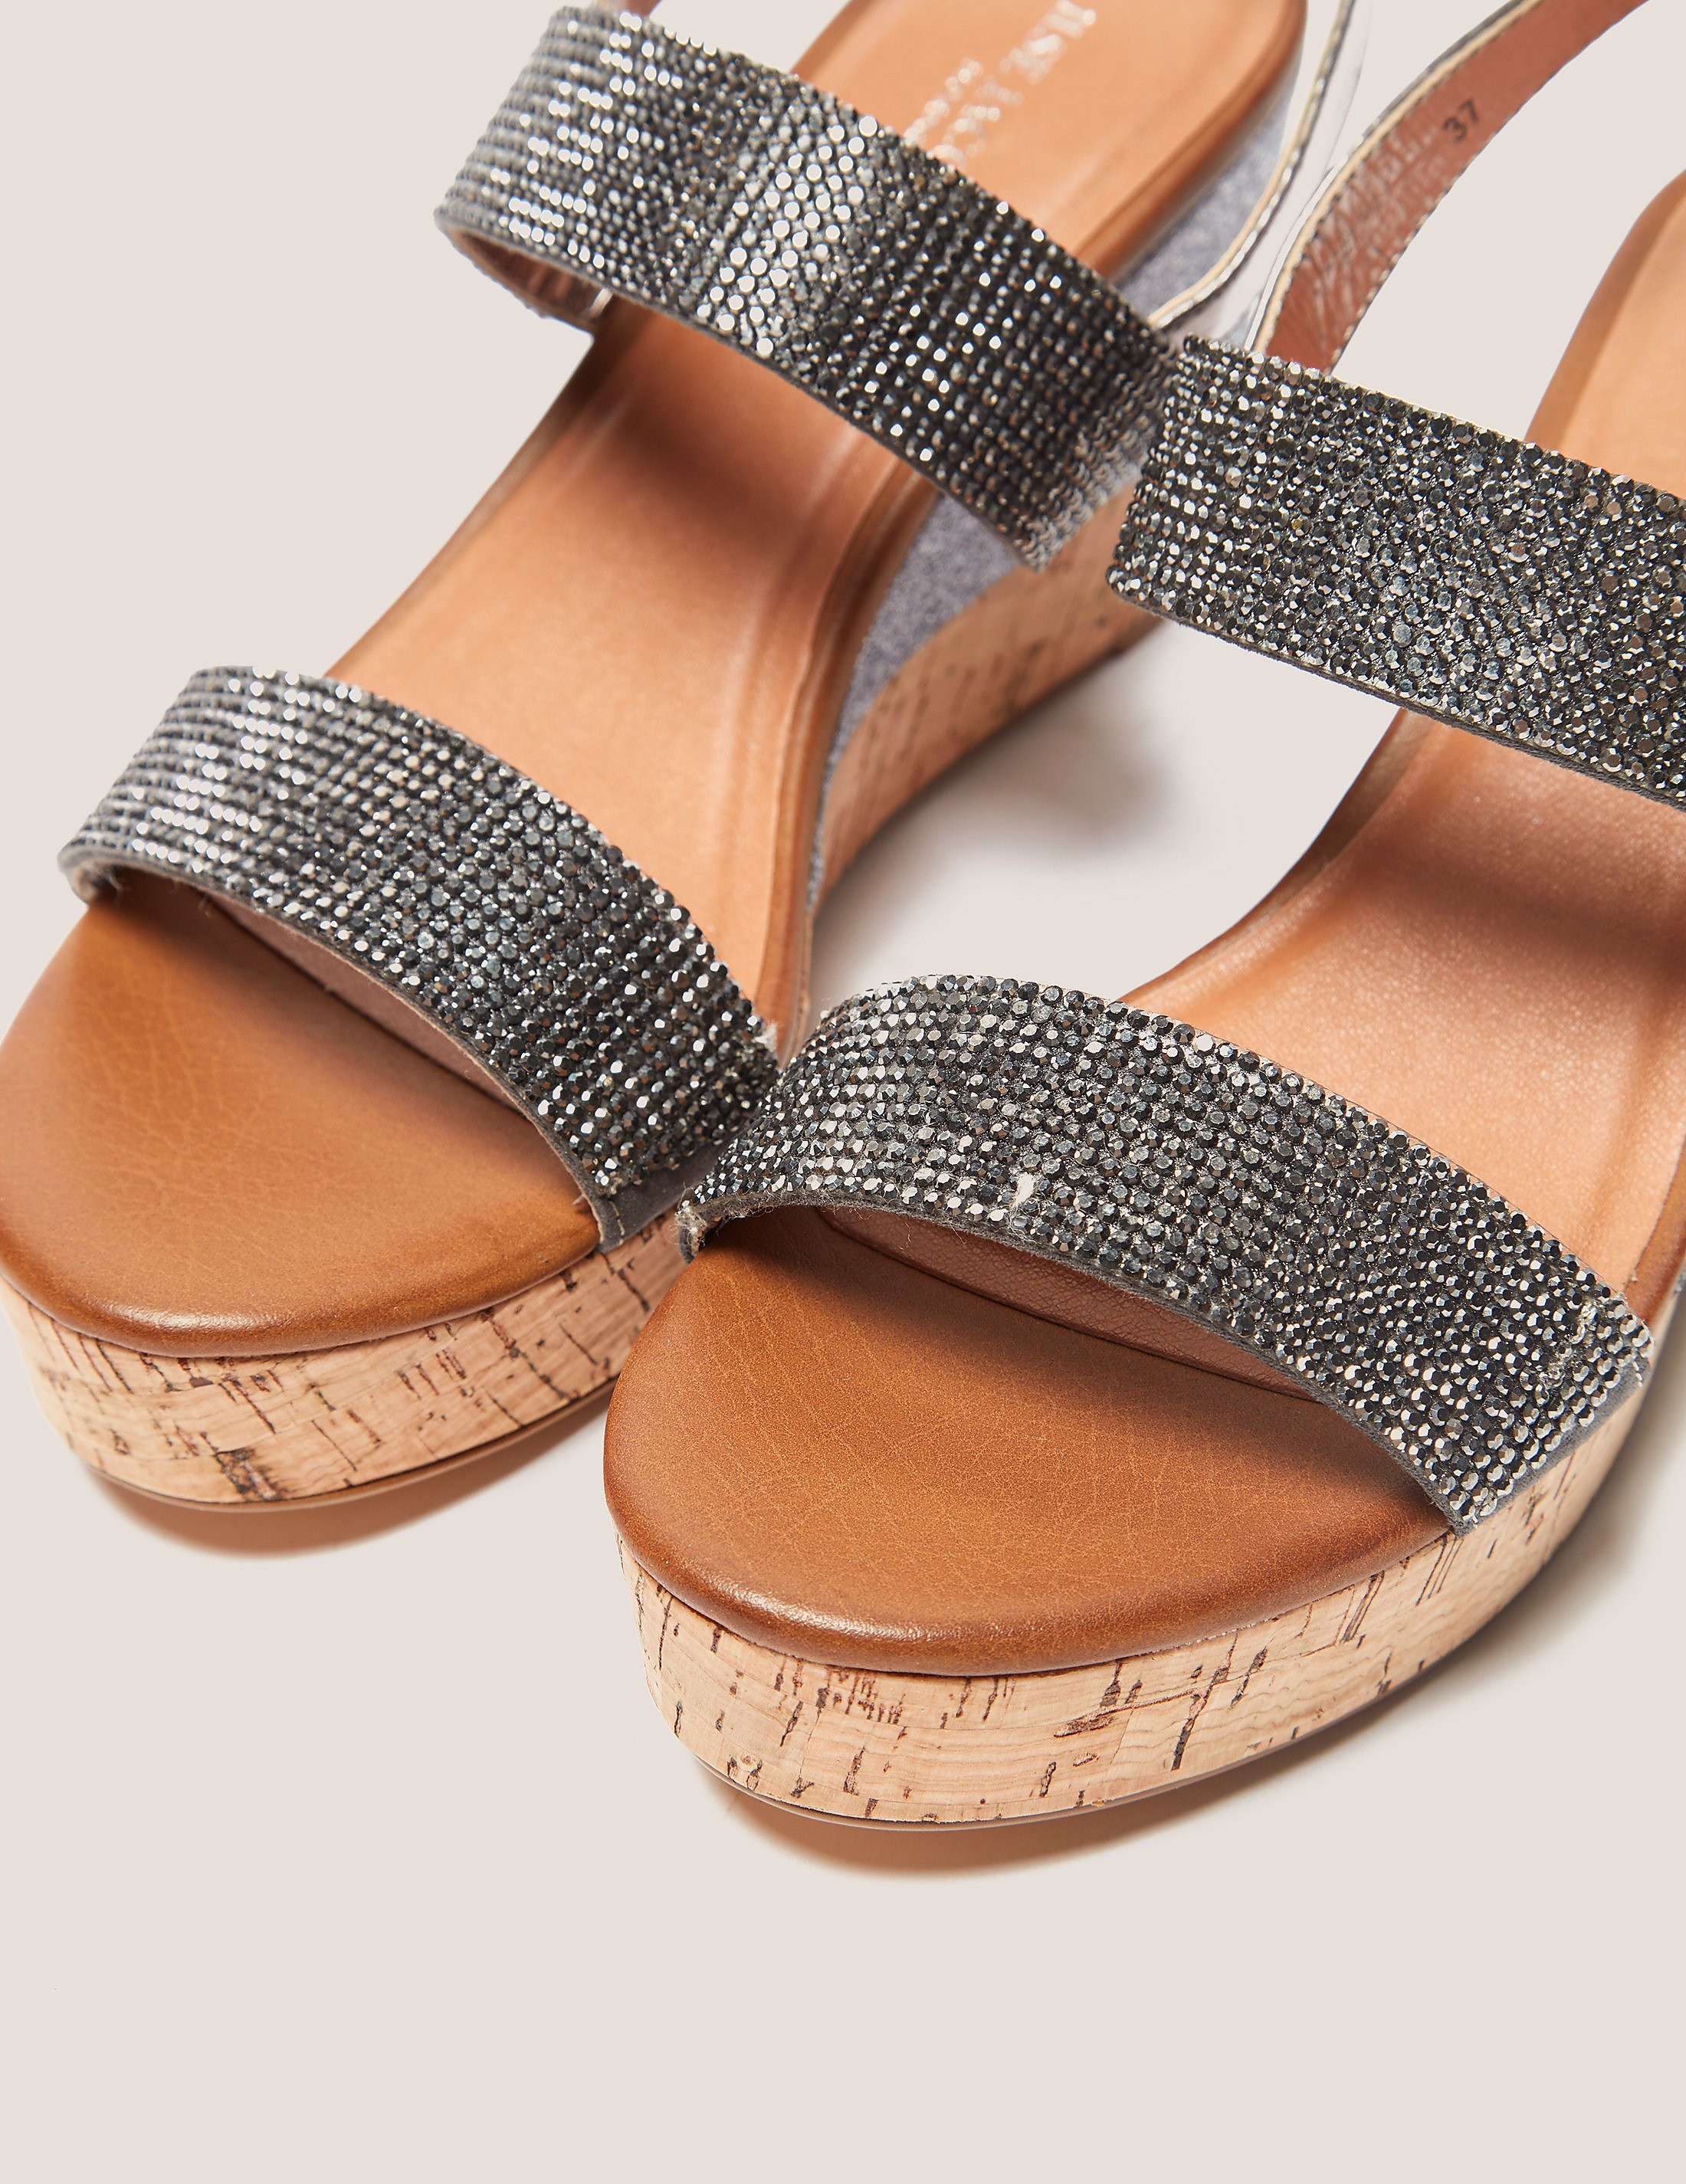 Ilse Jacobsen Poppy Diamante Wedge Sandals